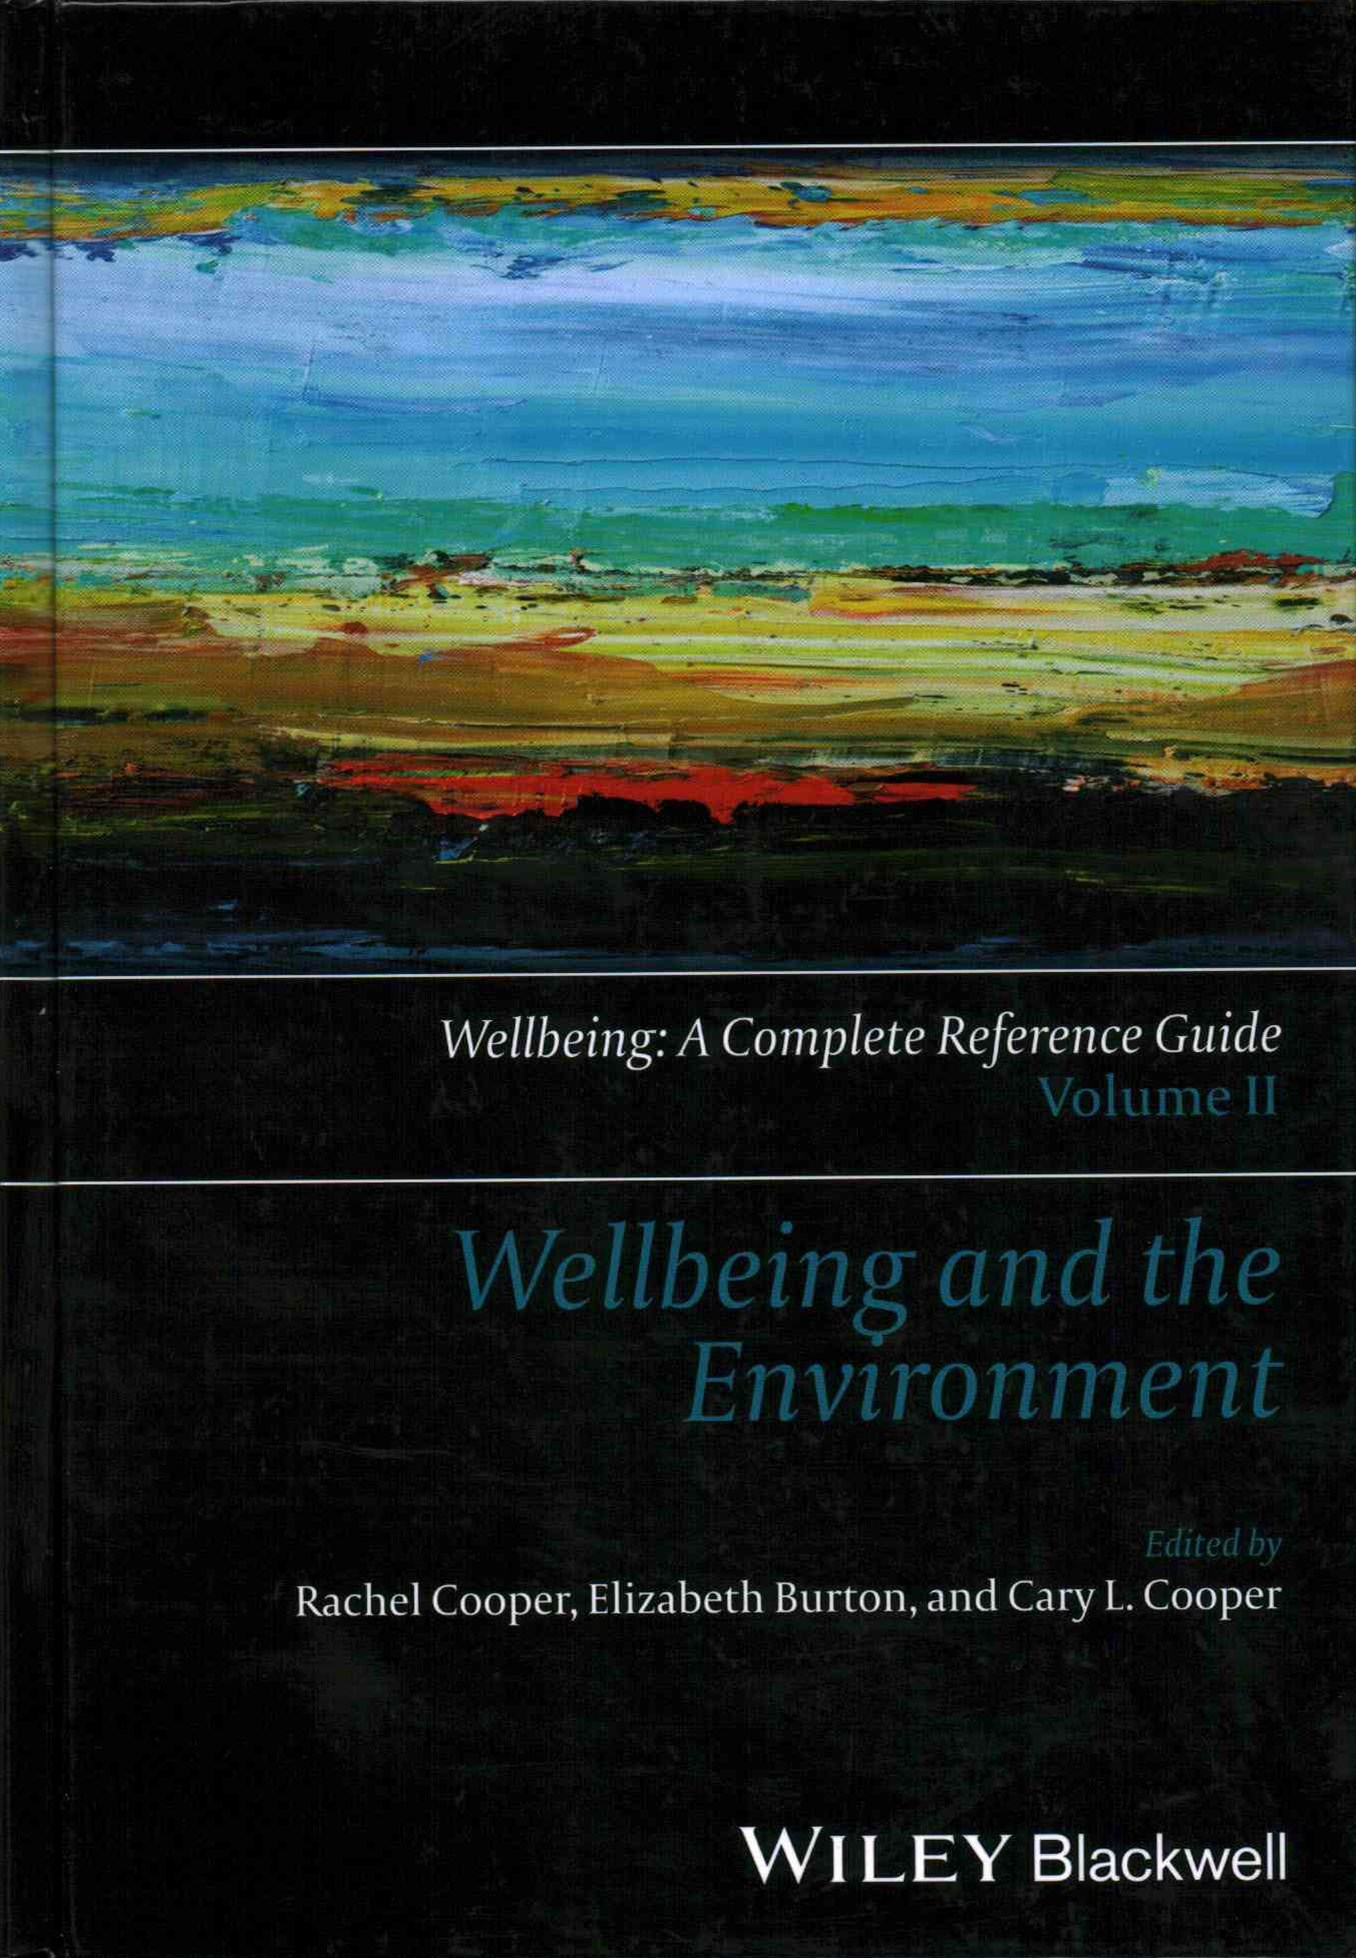 Wellbeing and the Environment - Wellbeing - a     Complete Reference Guide,  Vol 2